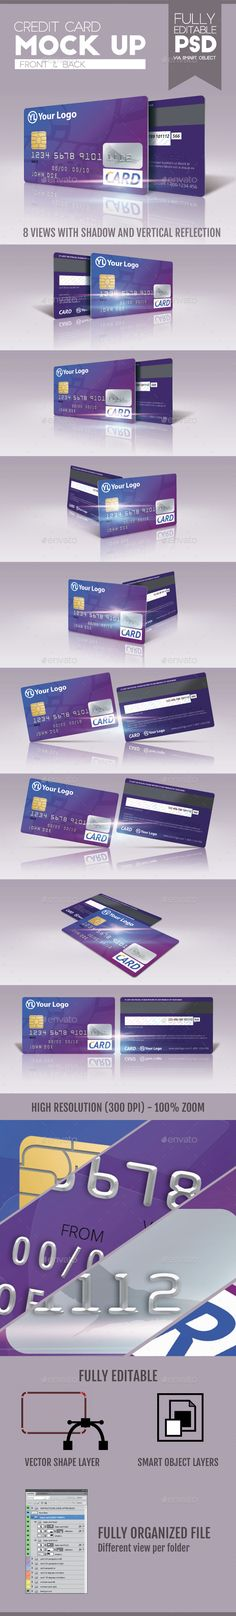 Buy Credit Card Mock Up by doghead on GraphicRiver. Featured Credit Card (Front and back). 8 views Size: / in / px High Resolution File: Credit Card Design, Name Card Design, Design Cards, Wood Business Cards, Business Credit Cards, Credit Score, Mockup Templates, Flyer Template, Vip Card